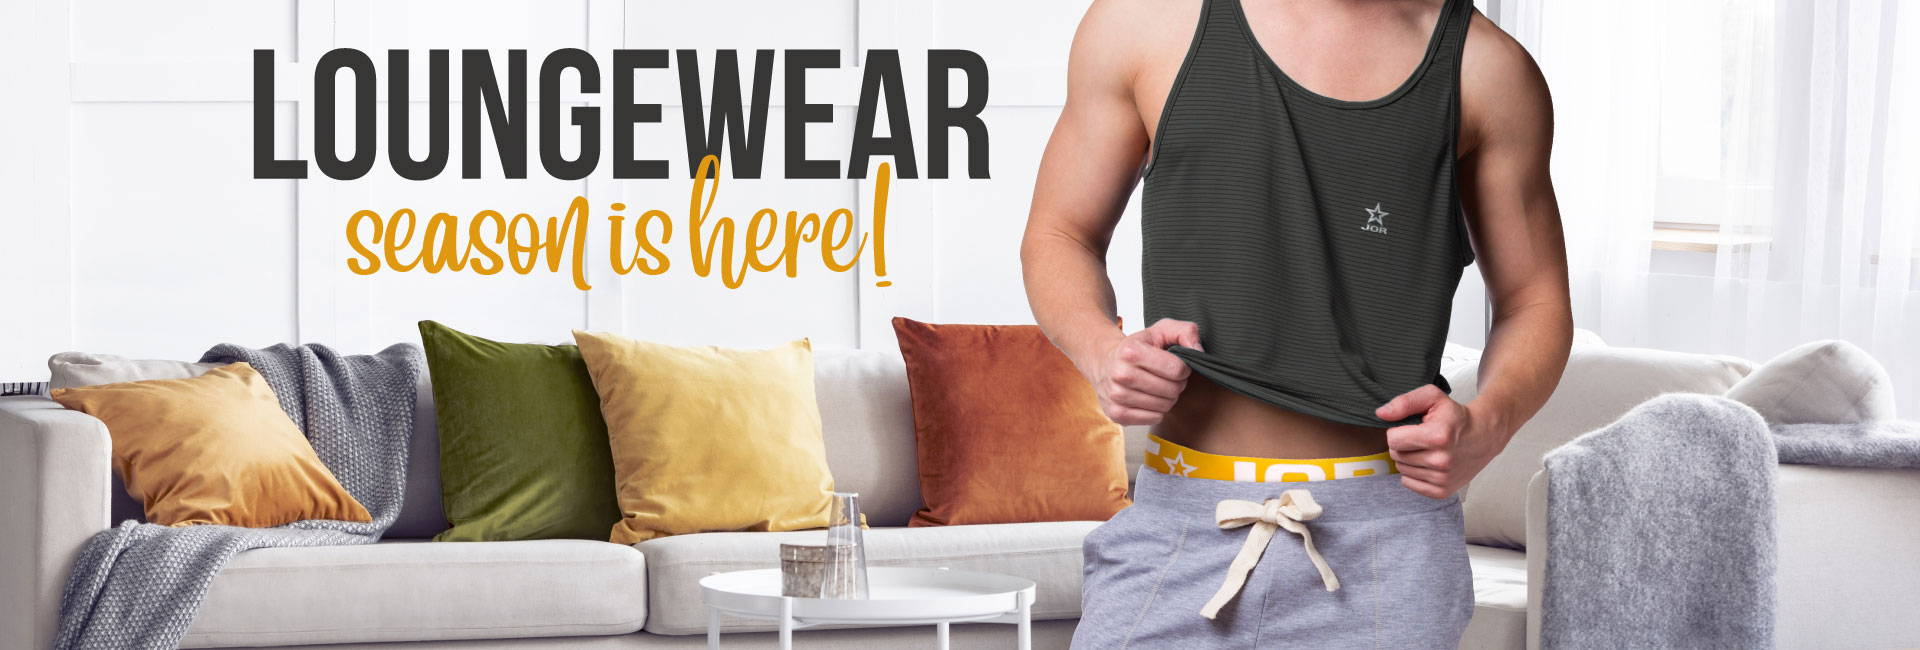 Loungewear Season Is Here!